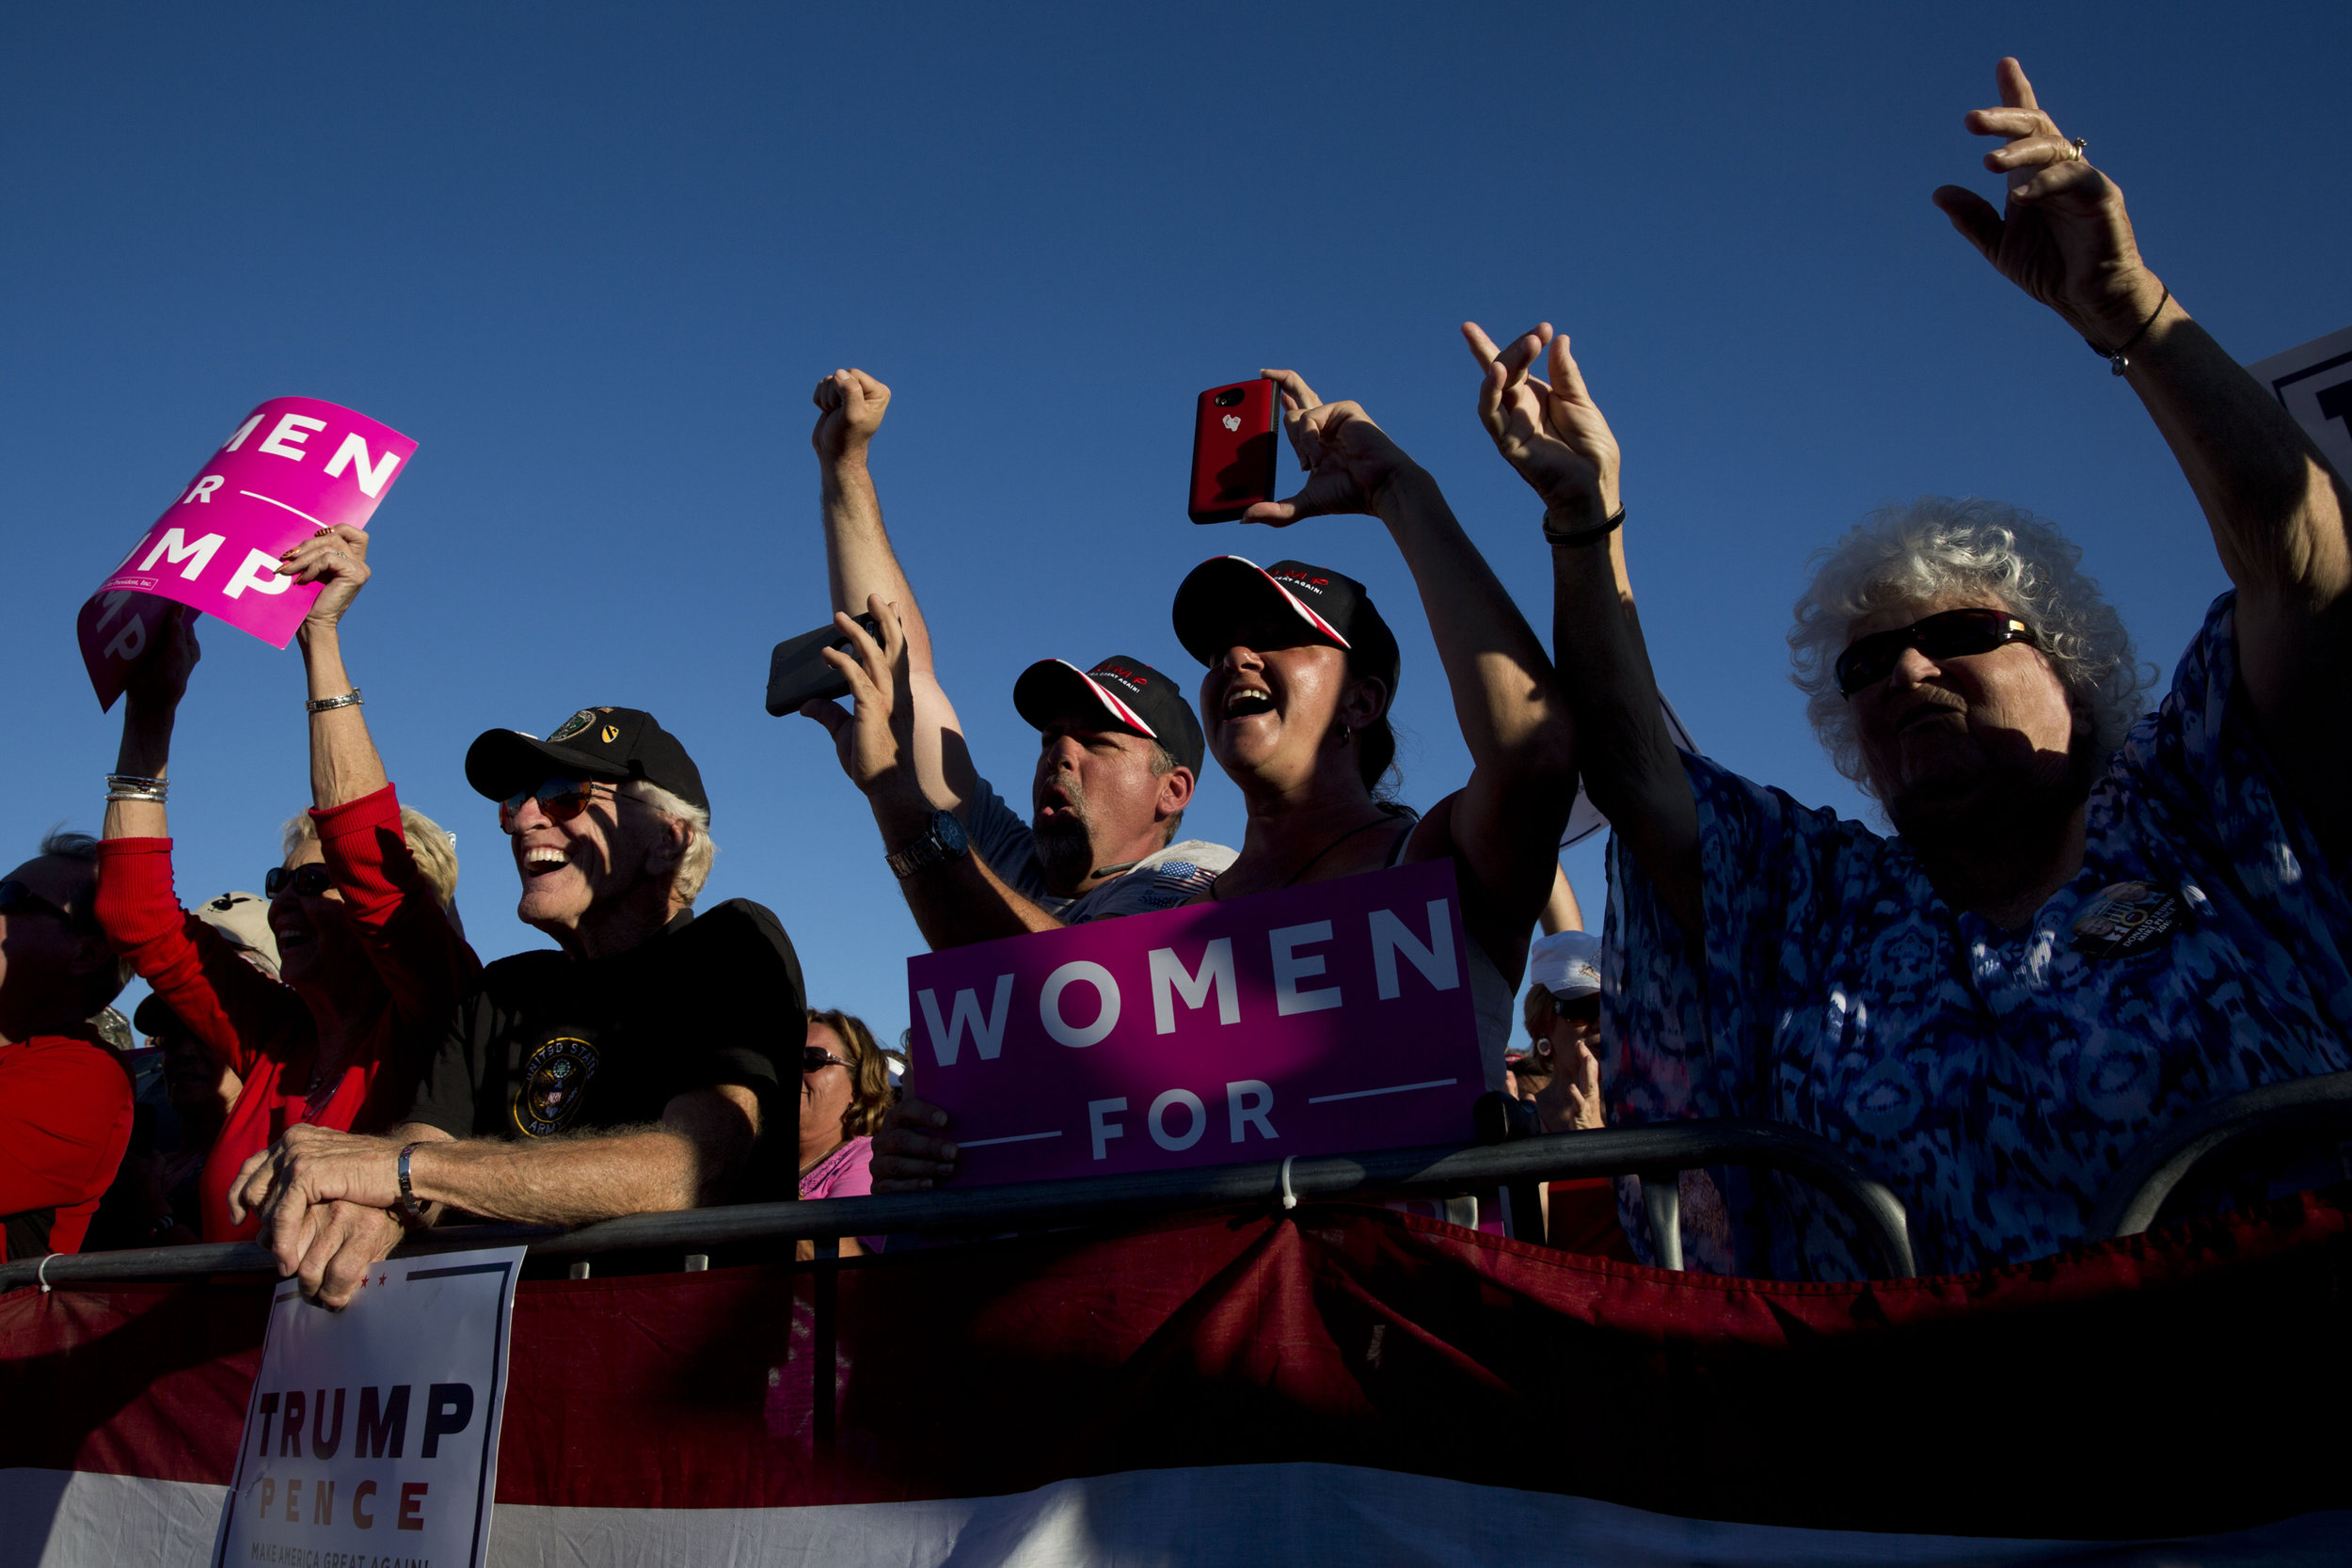 Donald Trump supporters cheer as Republican presidential candidate Donald Trump takes to the stage during his rally at the Collier County Fairgrounds Sunday, October 23, 2016 in Golden Gate Estates.